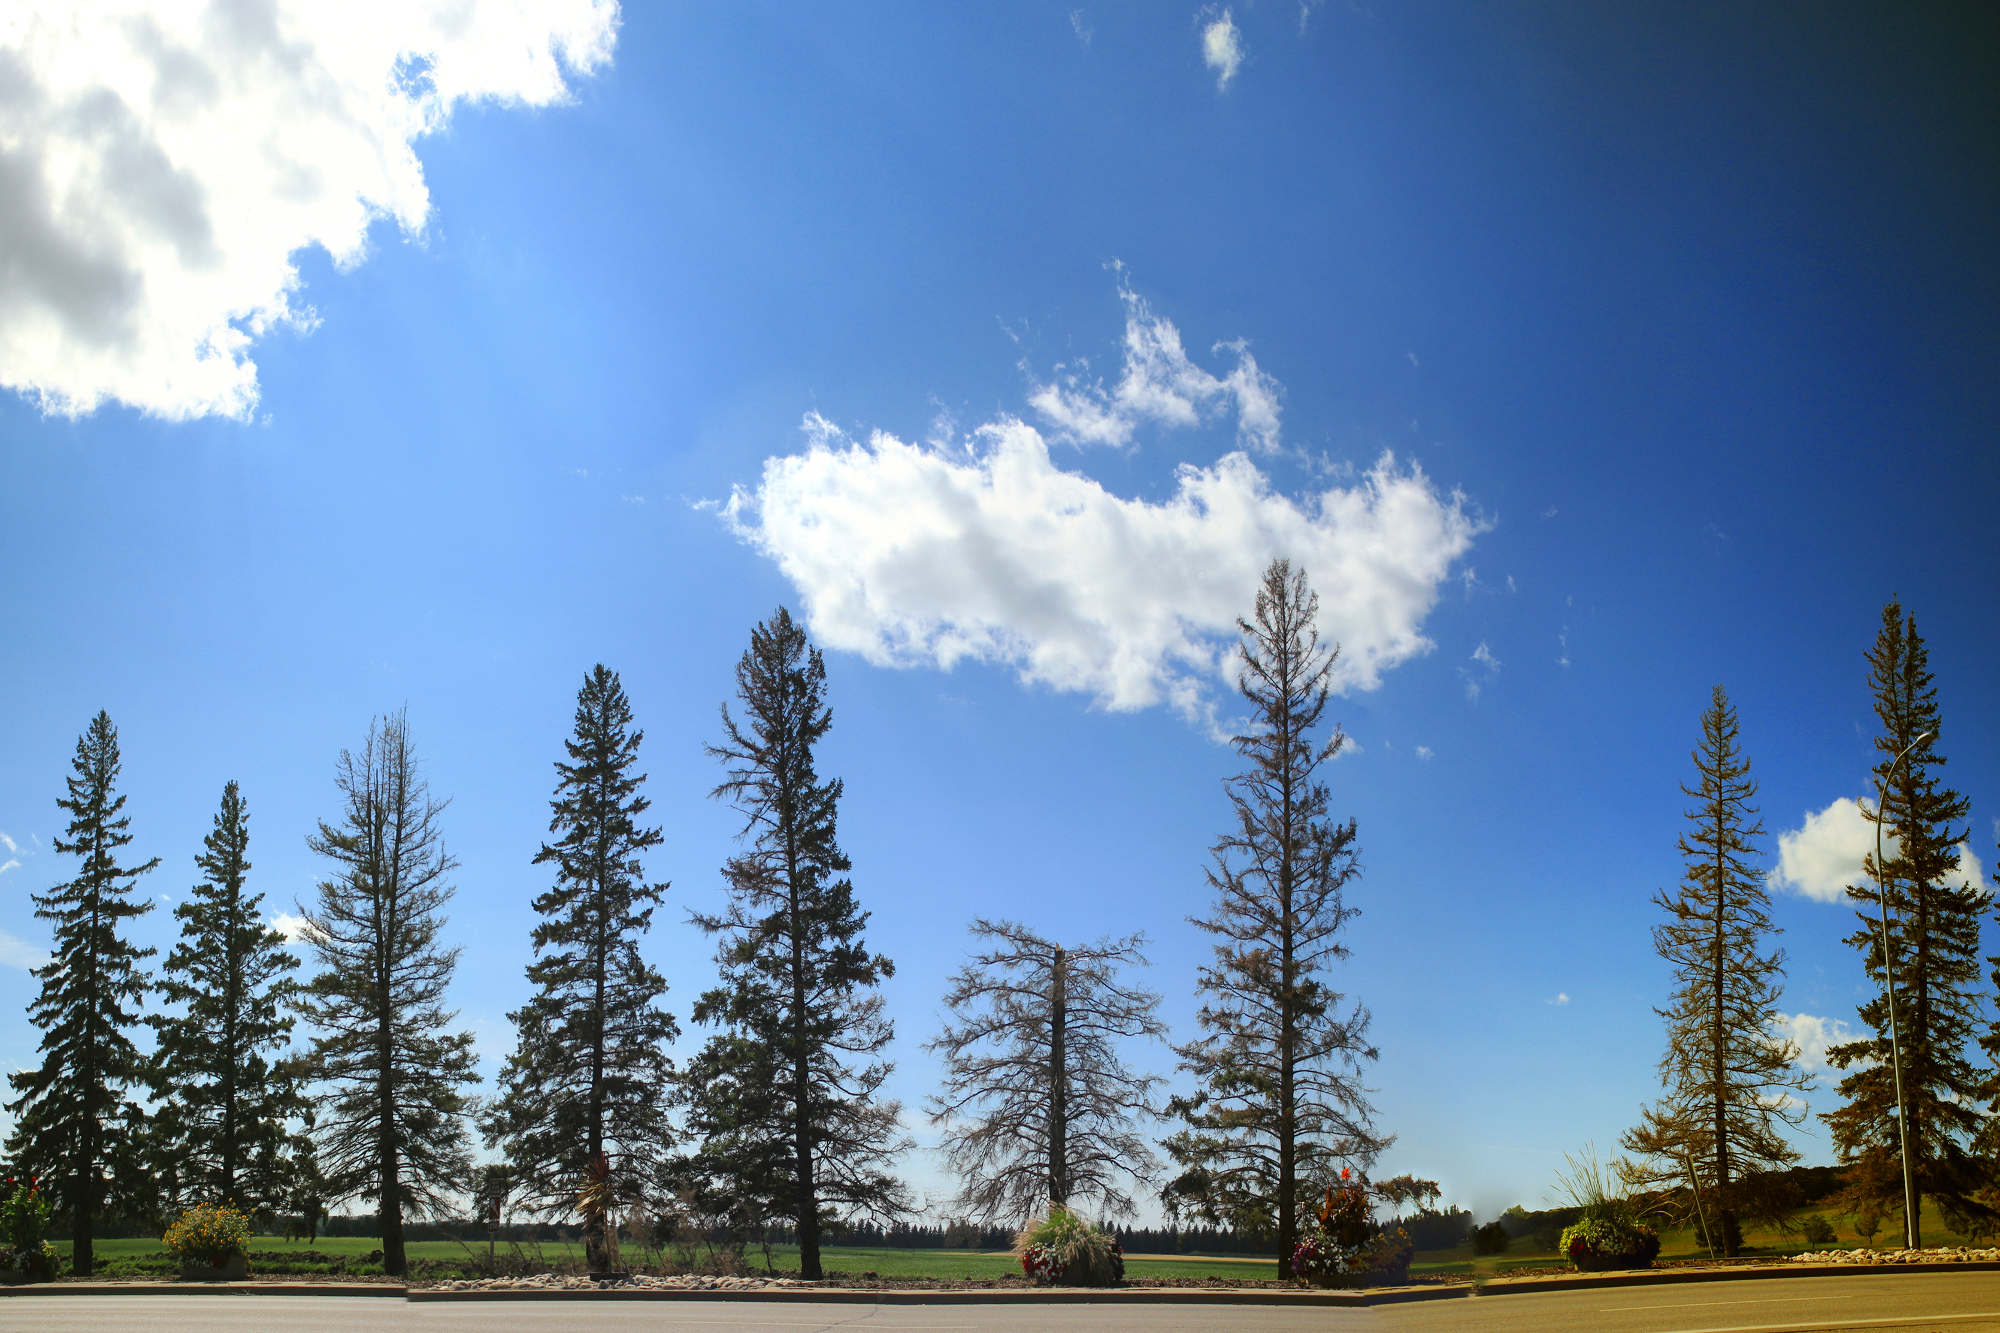 Panoramic photo of the pines on 18th Street; one has been lopped off about halfway up